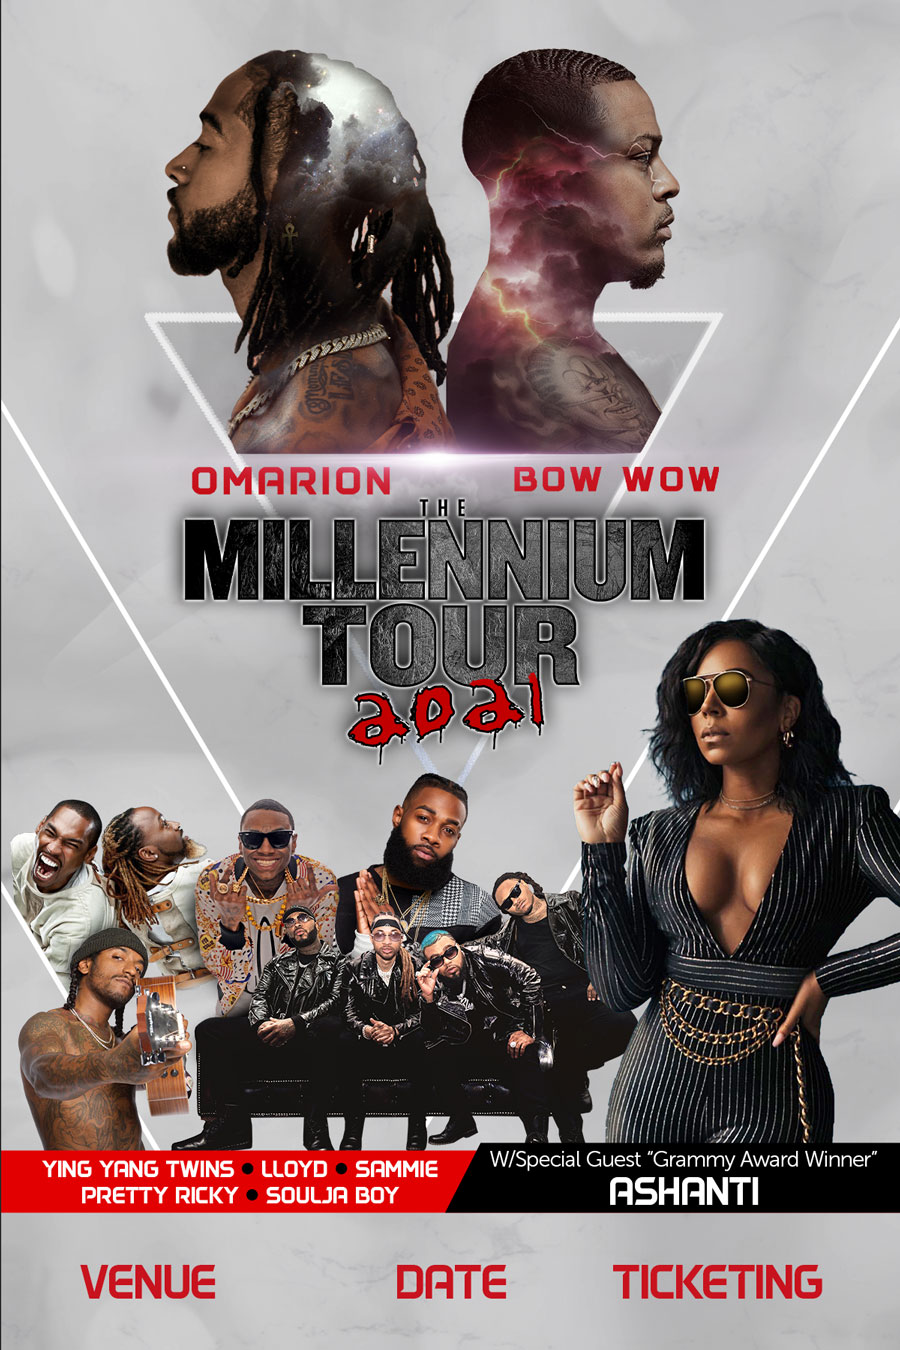 The Millennium Tour 2021 New Dates Announced, Event to Feature Ashanti, Omarion, Bow Wow, Ying Yang Twins, and More